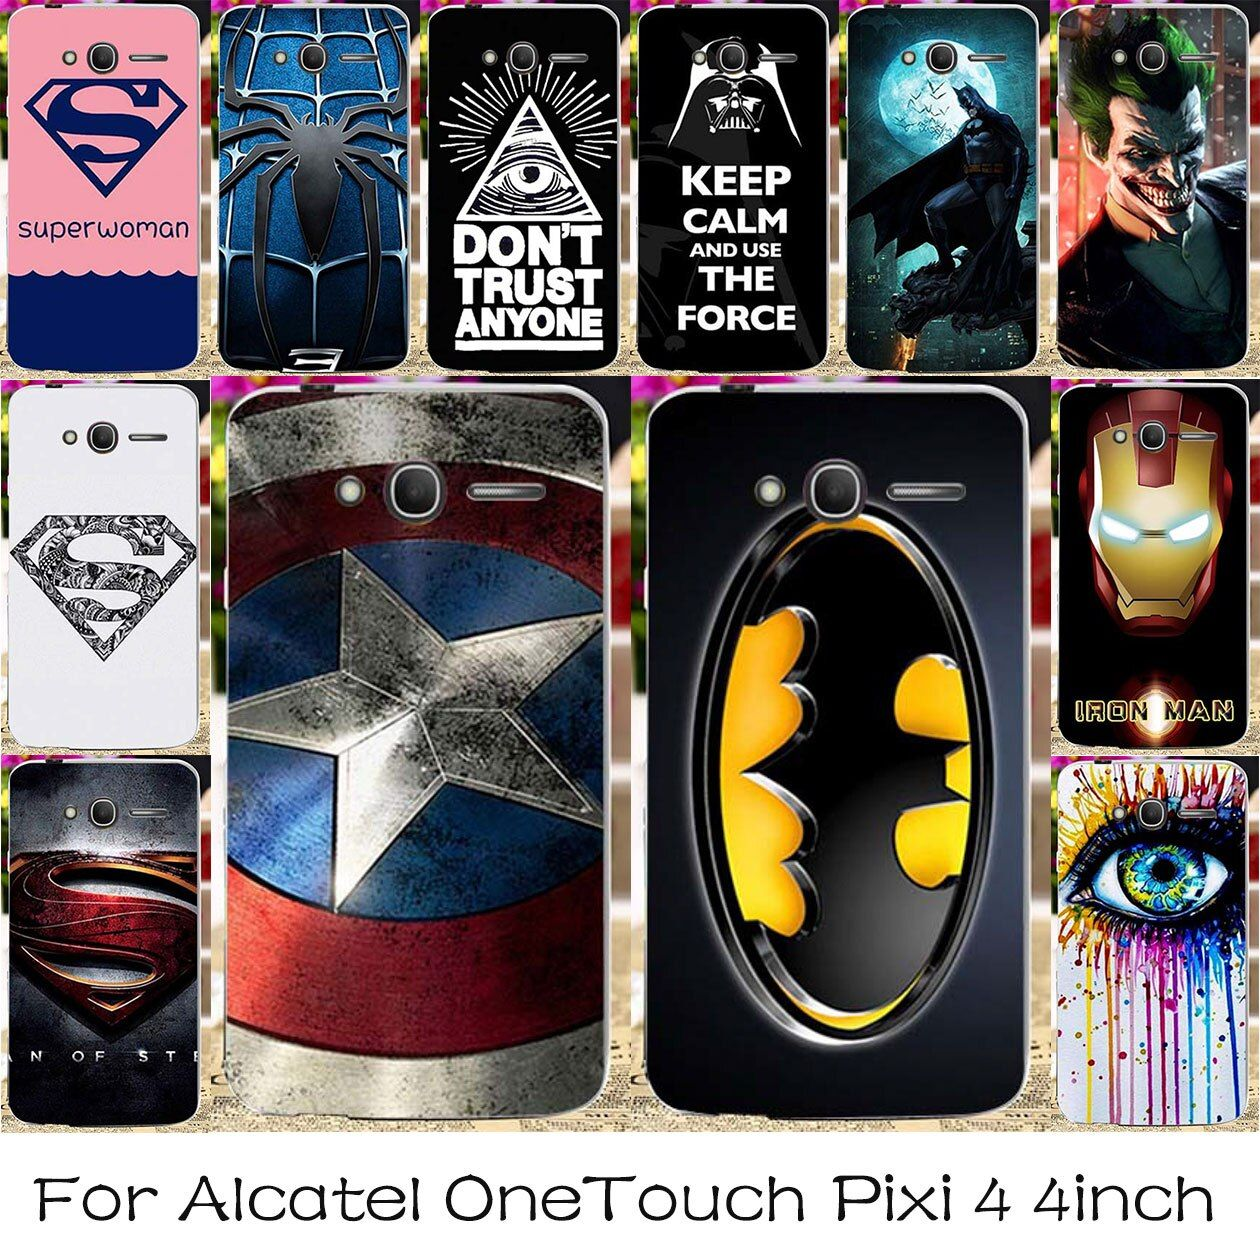 TAOYUNXI Silicone Phone Case For Alcatel OneTouch Pixi 4 4.0 inch Housing Cover OT4034 4034D 4034E 4034F 4034N 4034E Bag Cases